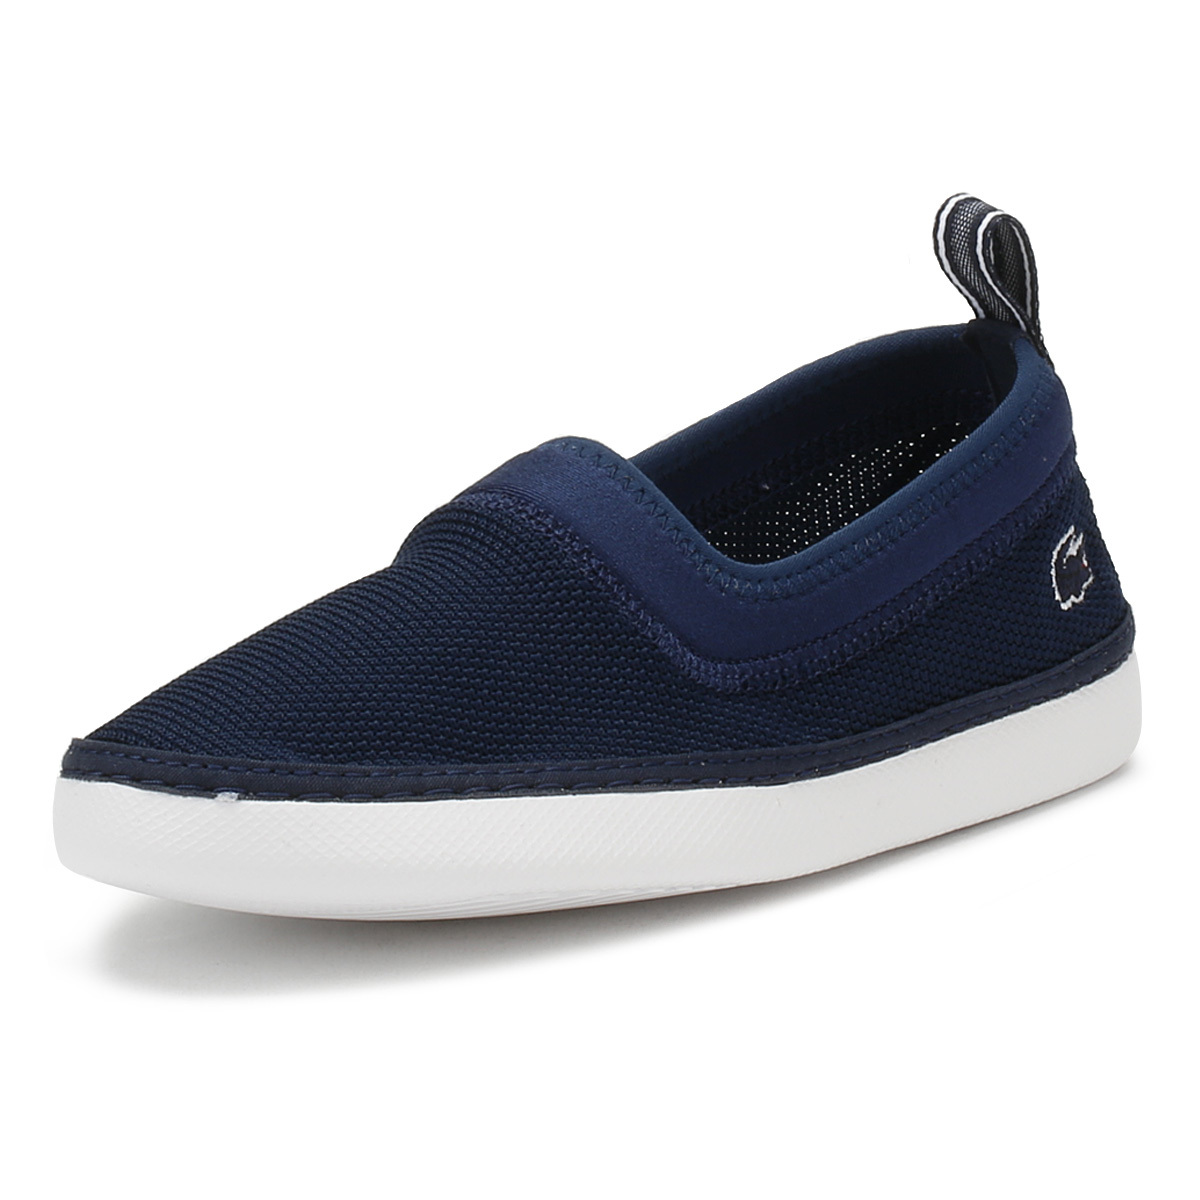 09c153bc39b2a3 Details about Lacoste Kids Navy   White L.YDRO 118 1 Espadrilles Casual  Slip On Flat Shoes